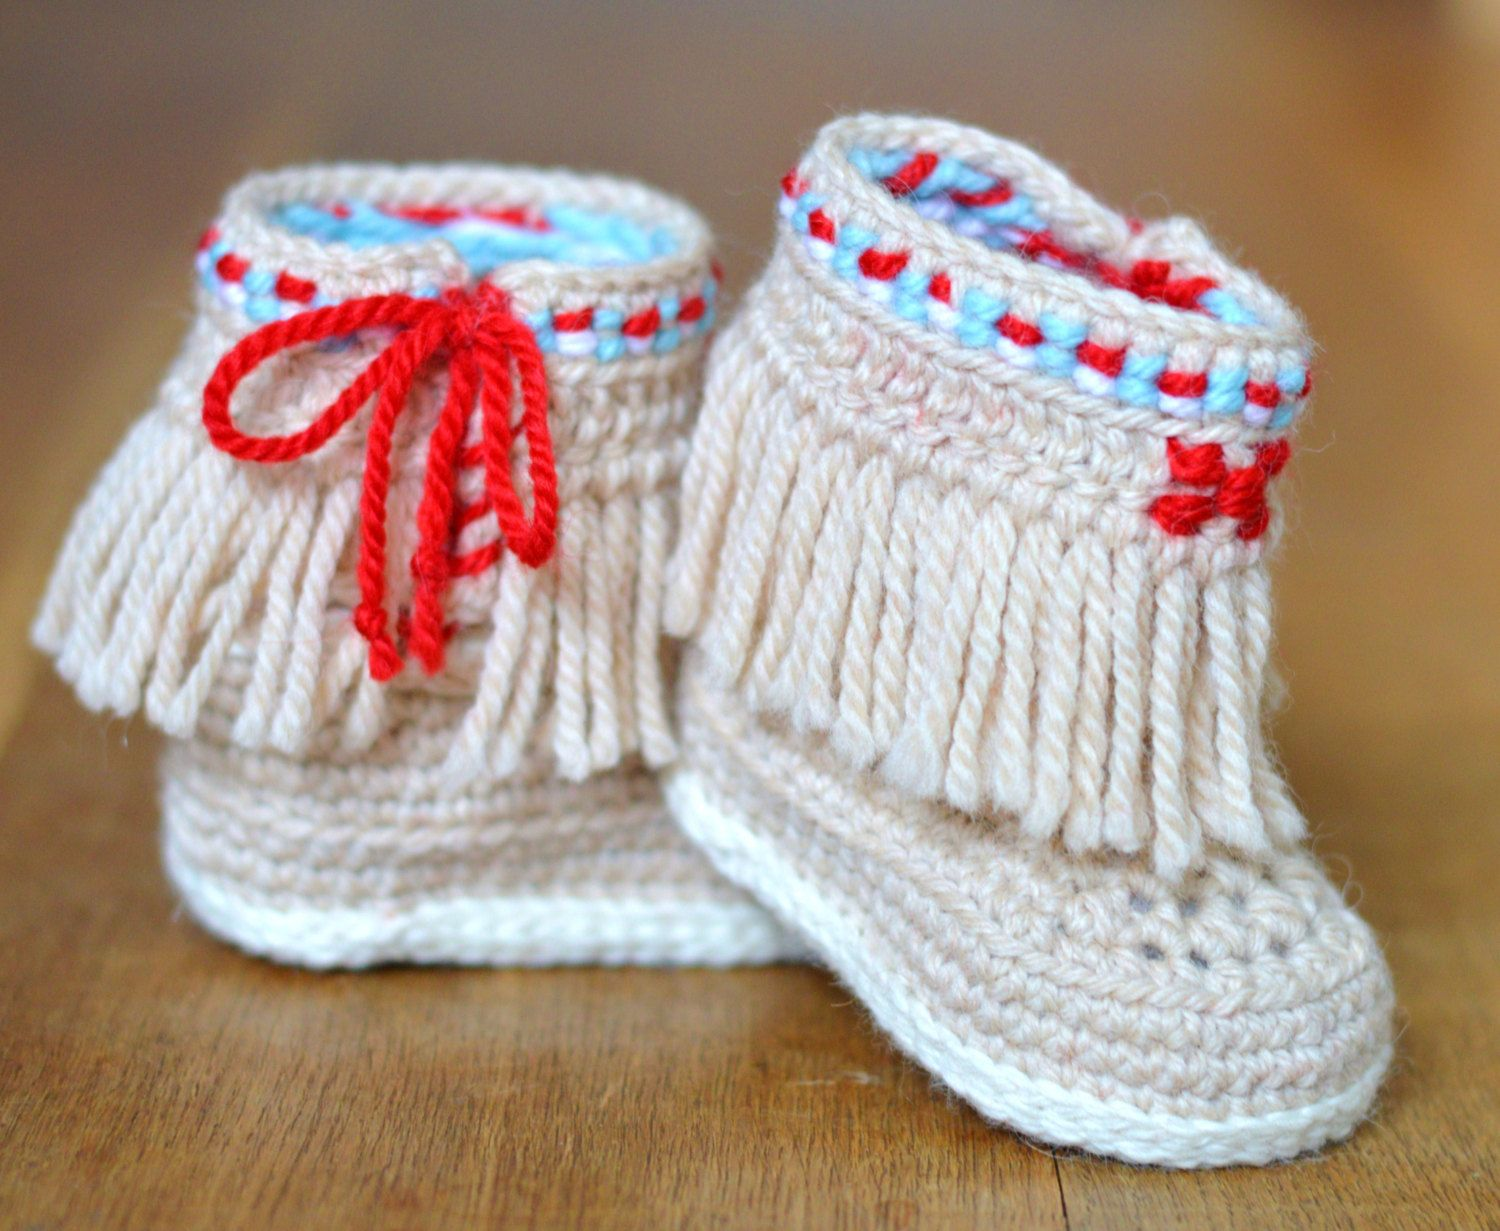 CROCHET PATTERN Moccasin Fringe Booties in 3 Sizes Photo Tutorial ...